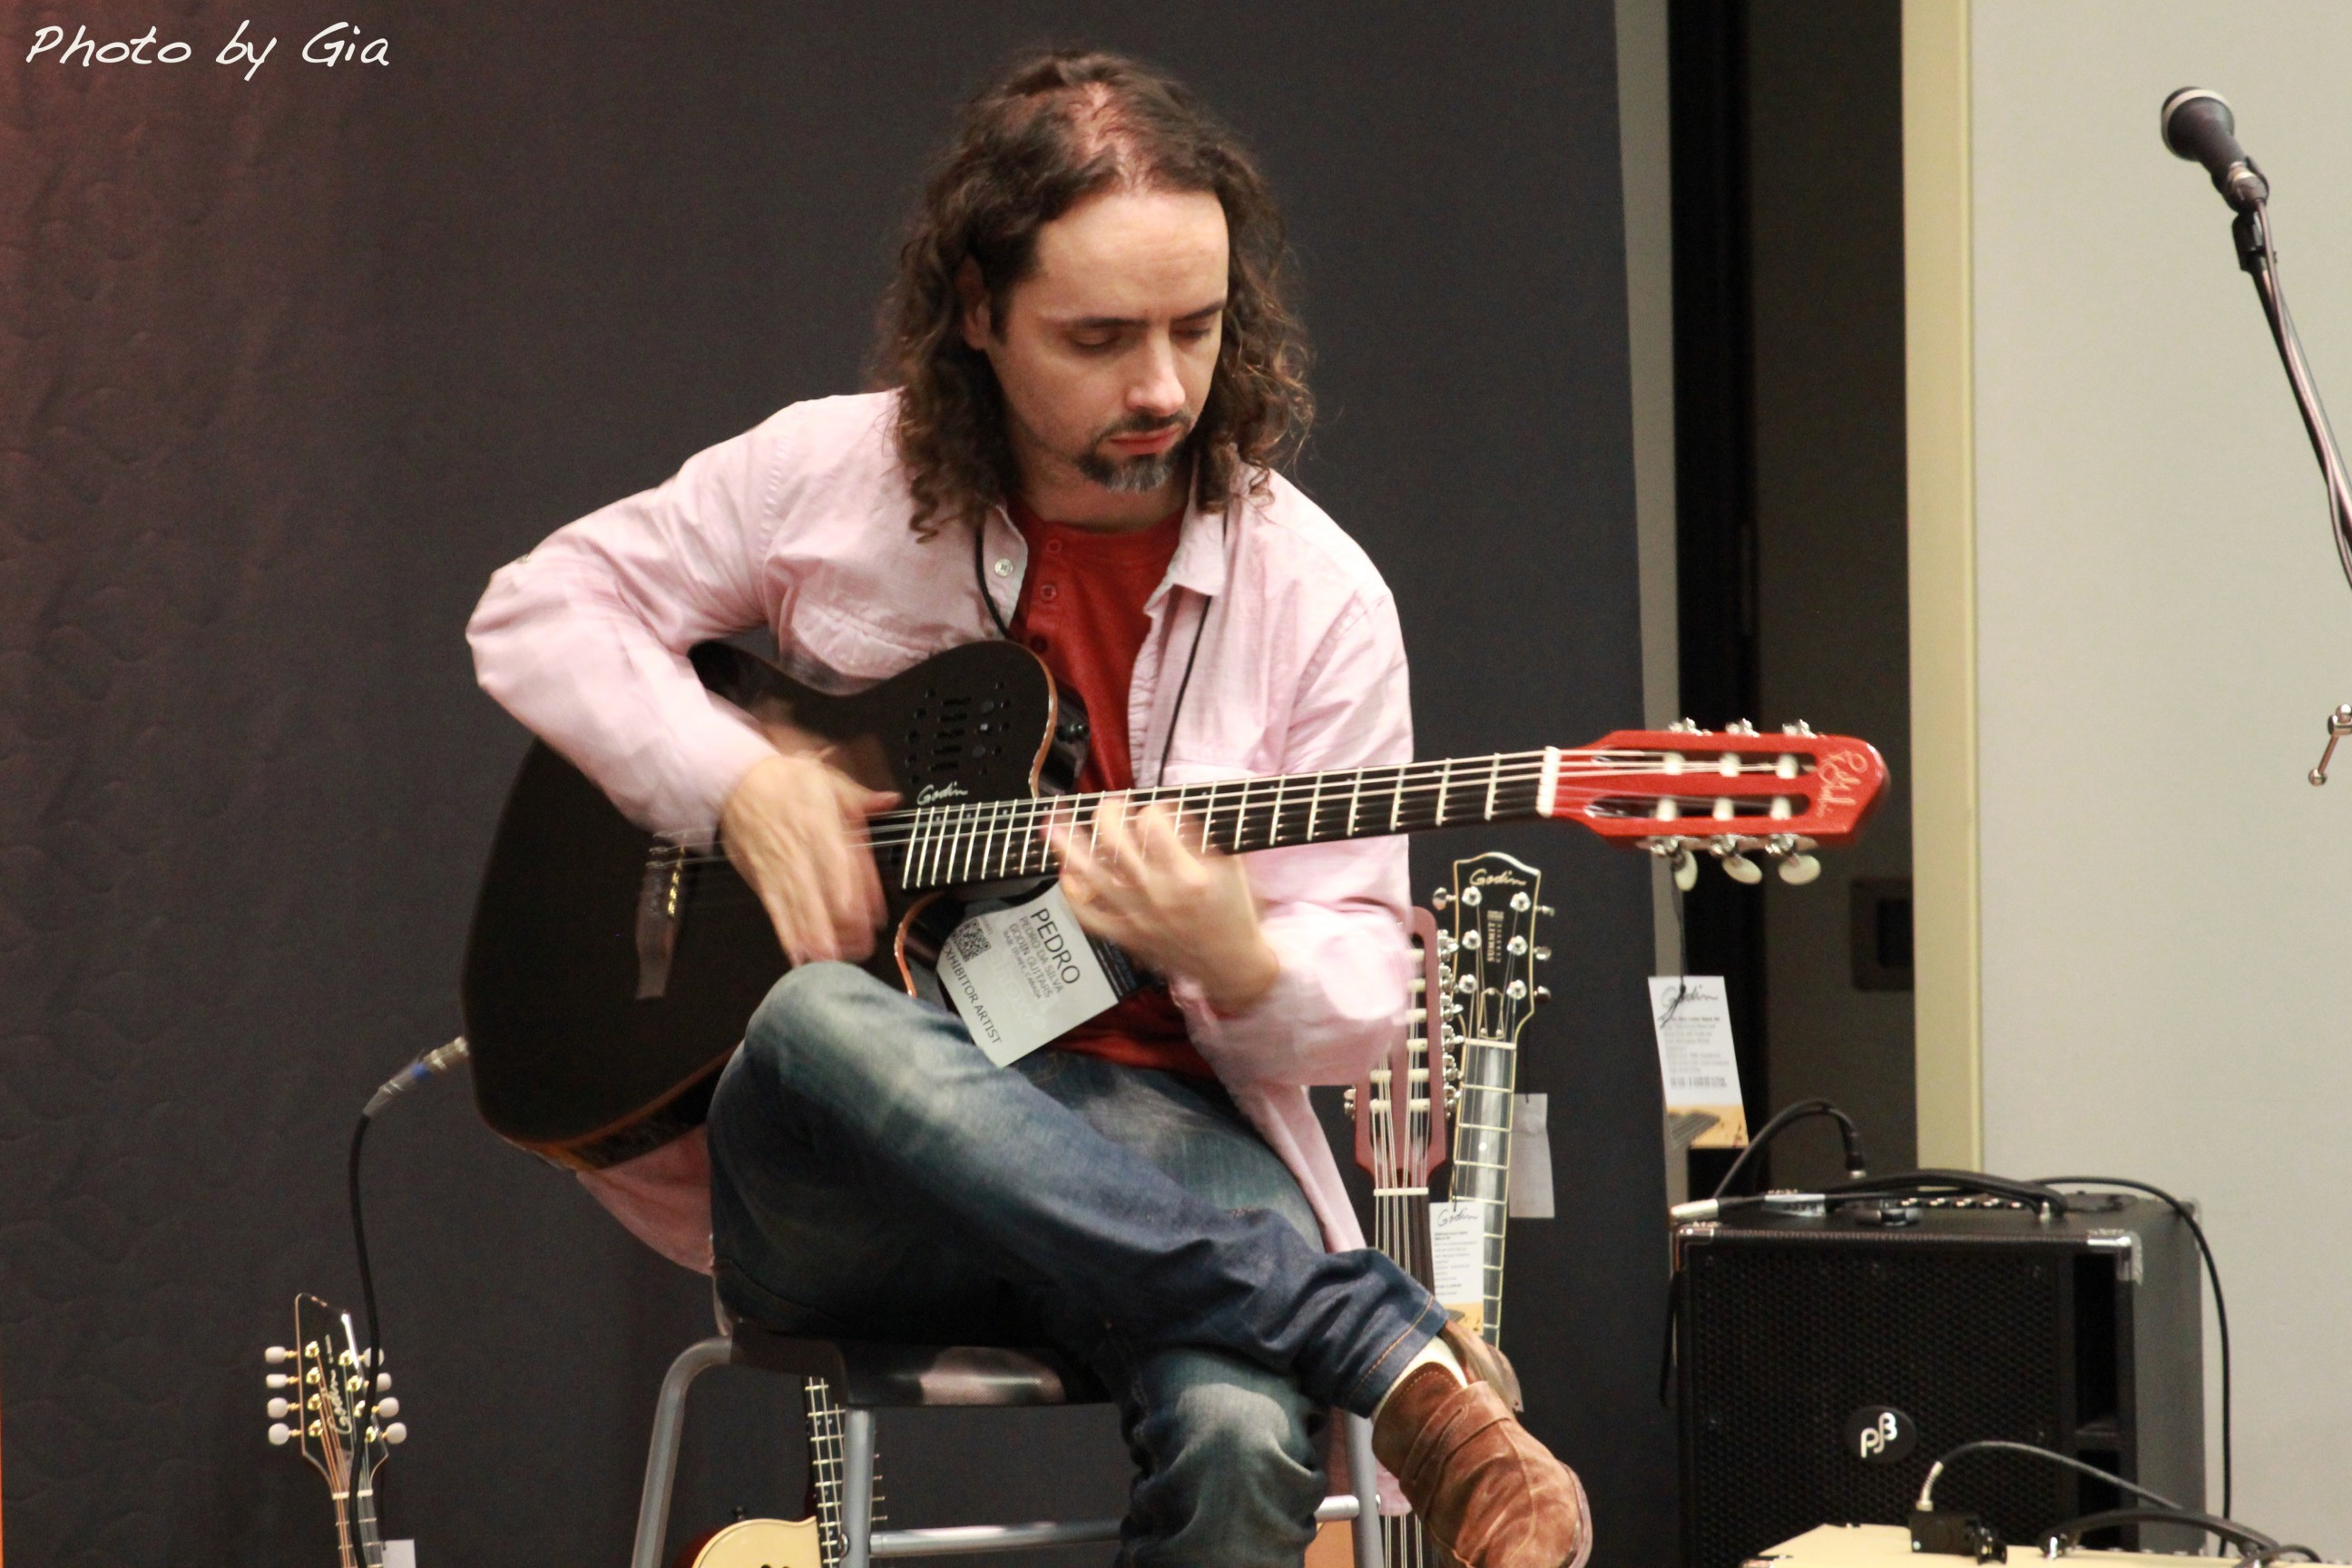 Pedro Da Silva, A Composer And Guitarist From Portugal